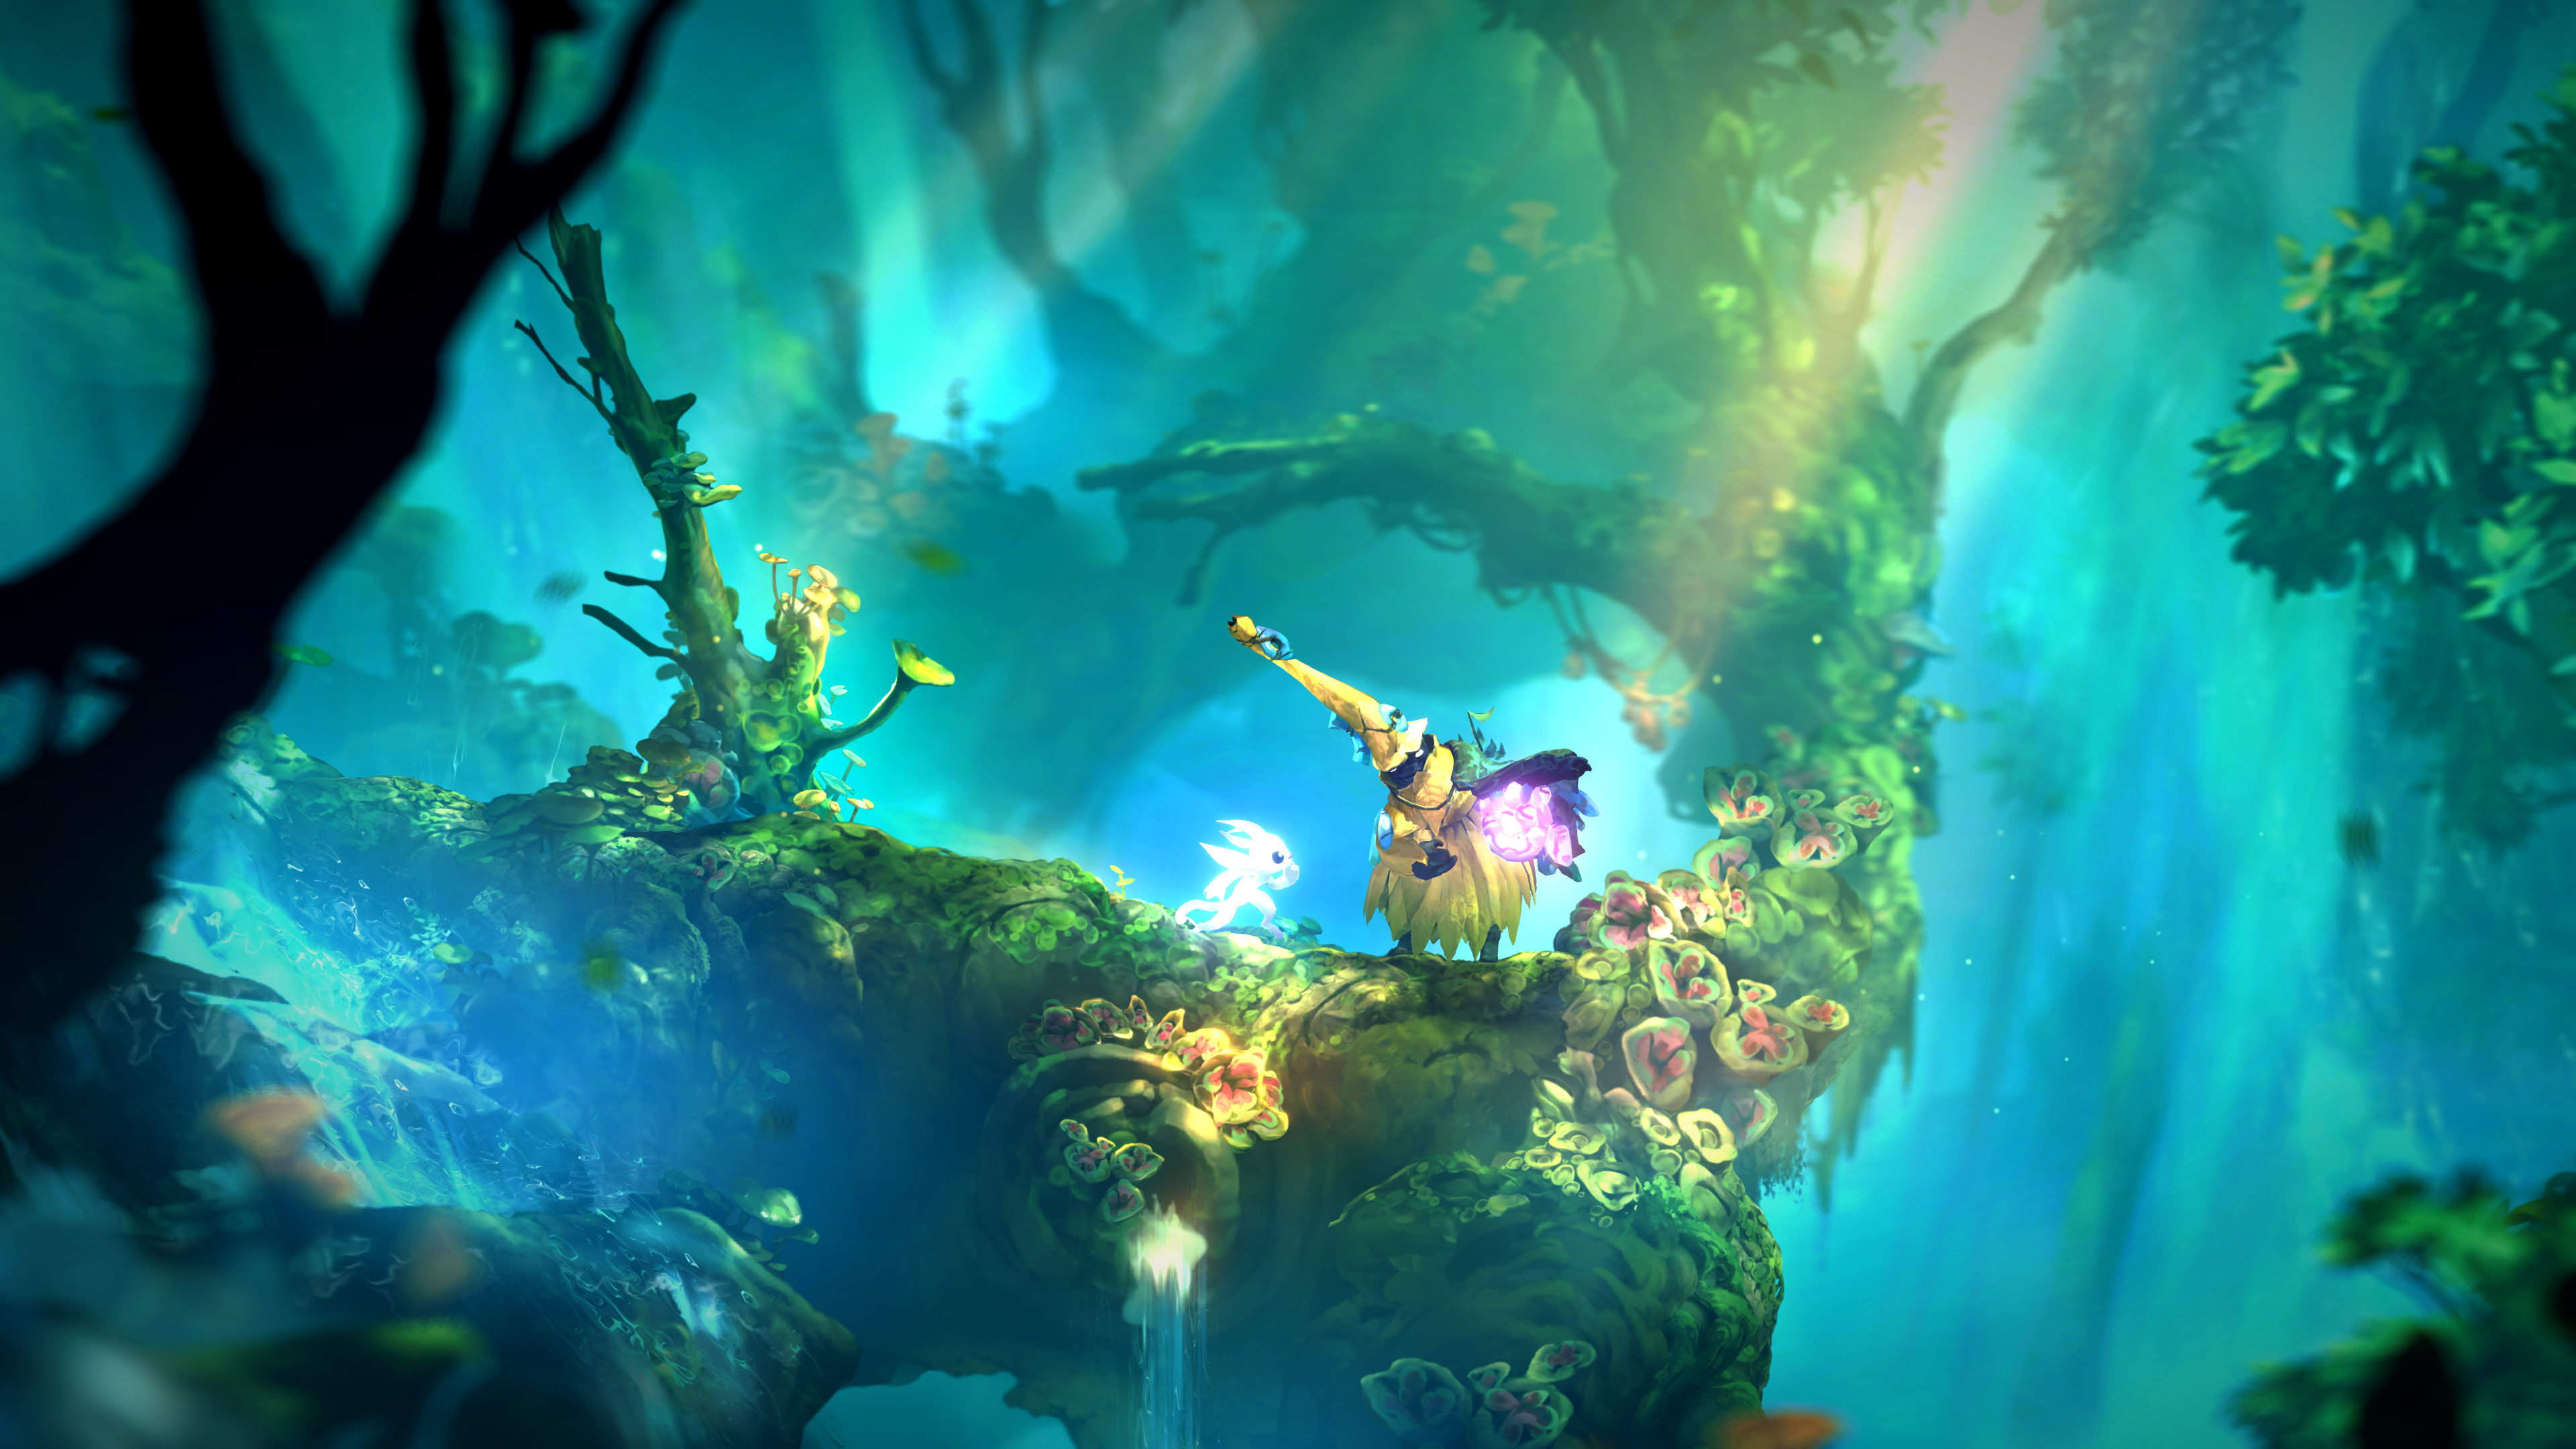 Ori and the Will of the Wisps 4k Ultra HD Wallpaper Background 3840x2160